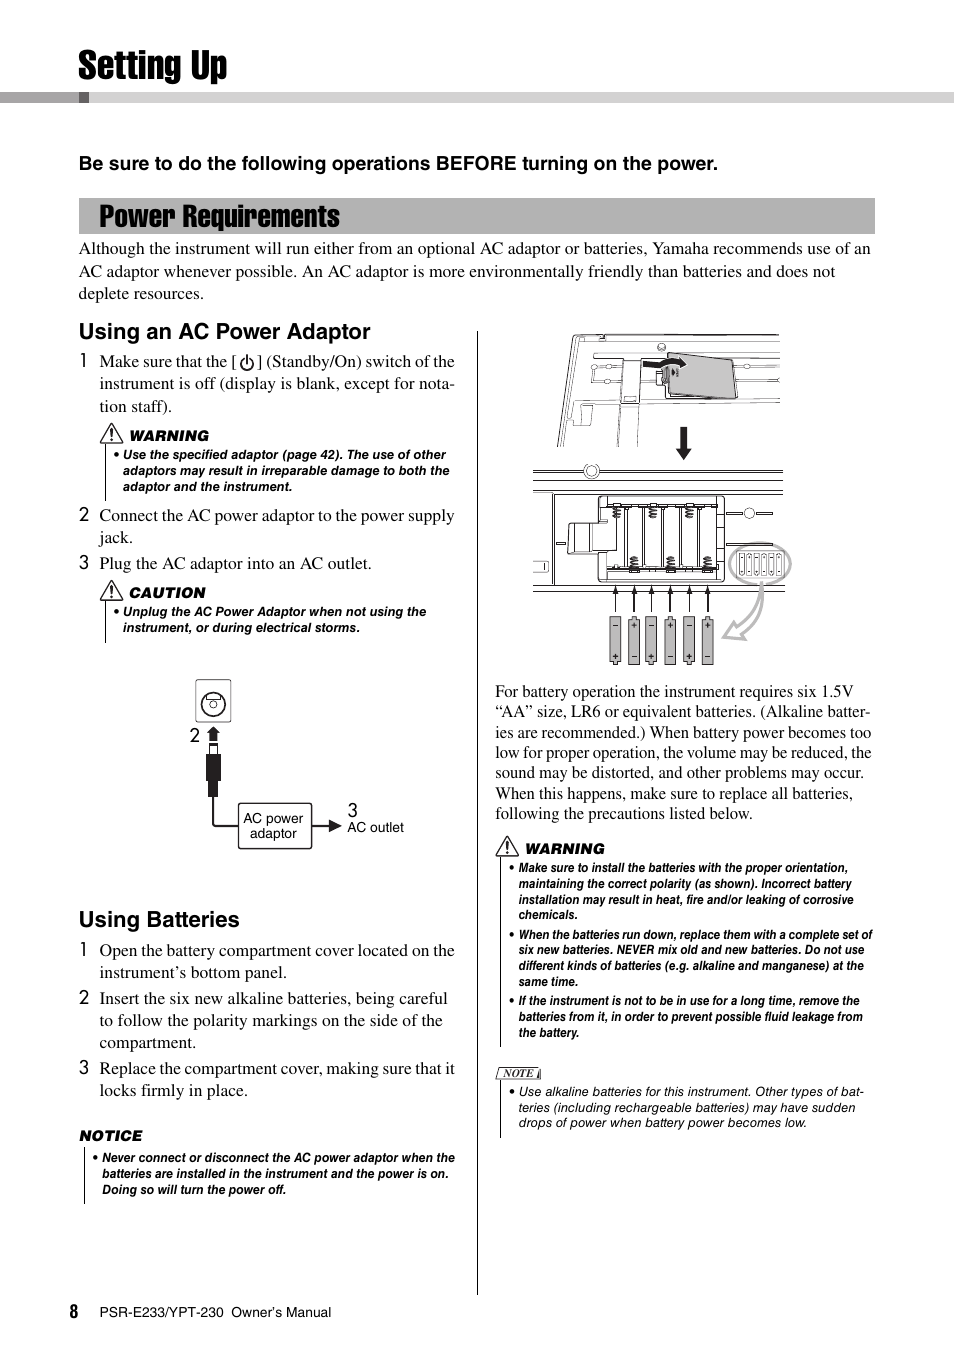 Introduction Setting Up Power Requirements Yamaha Ypt